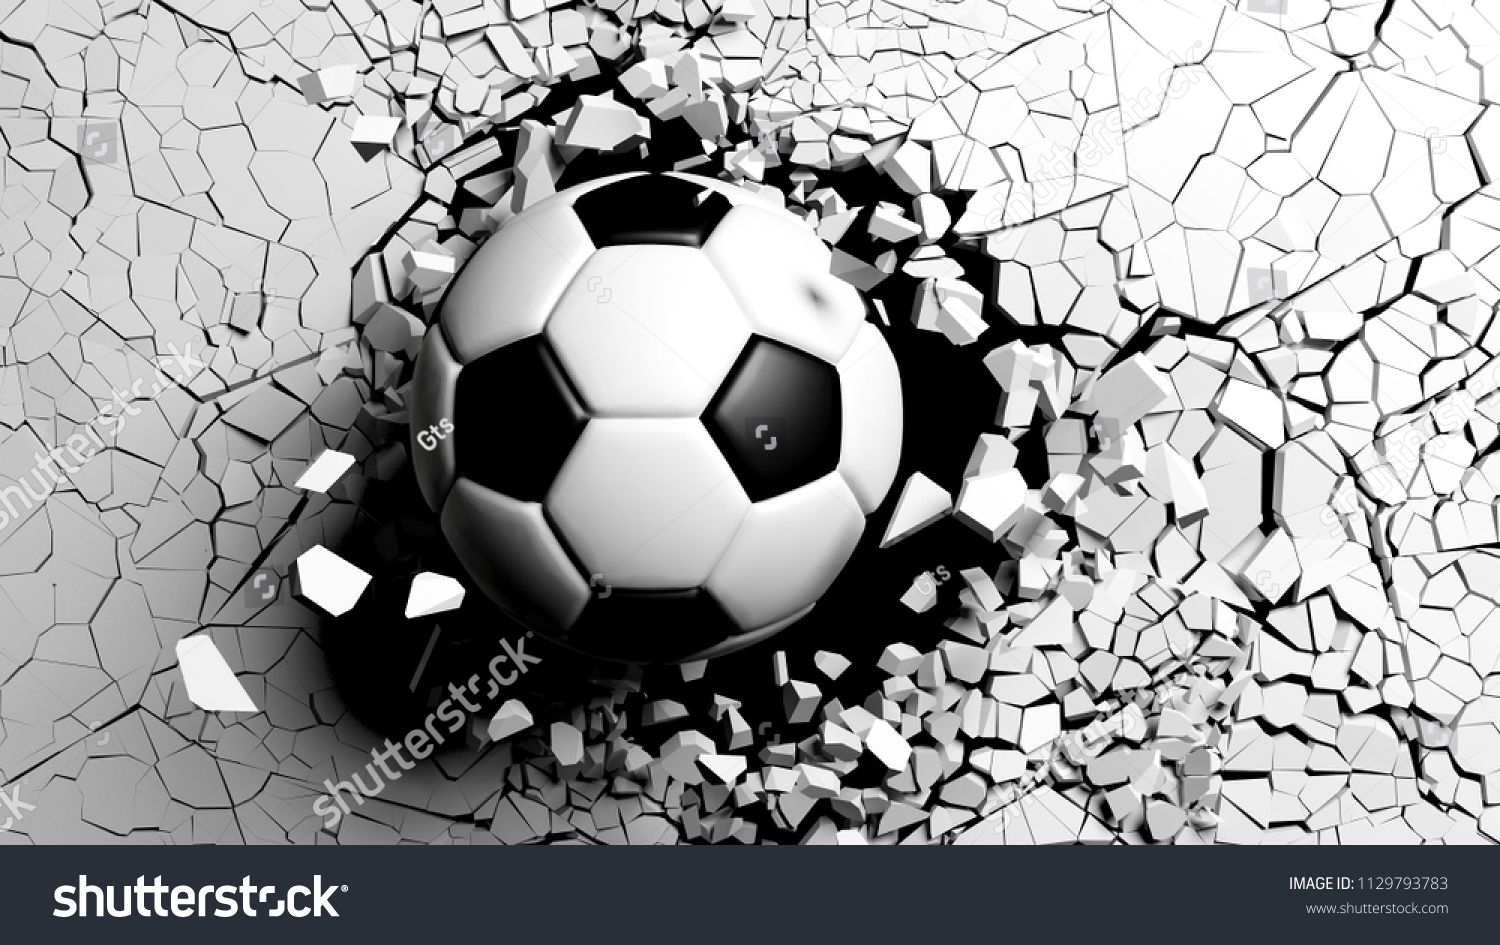 Soccer ball breaking with great force wallpaper mural